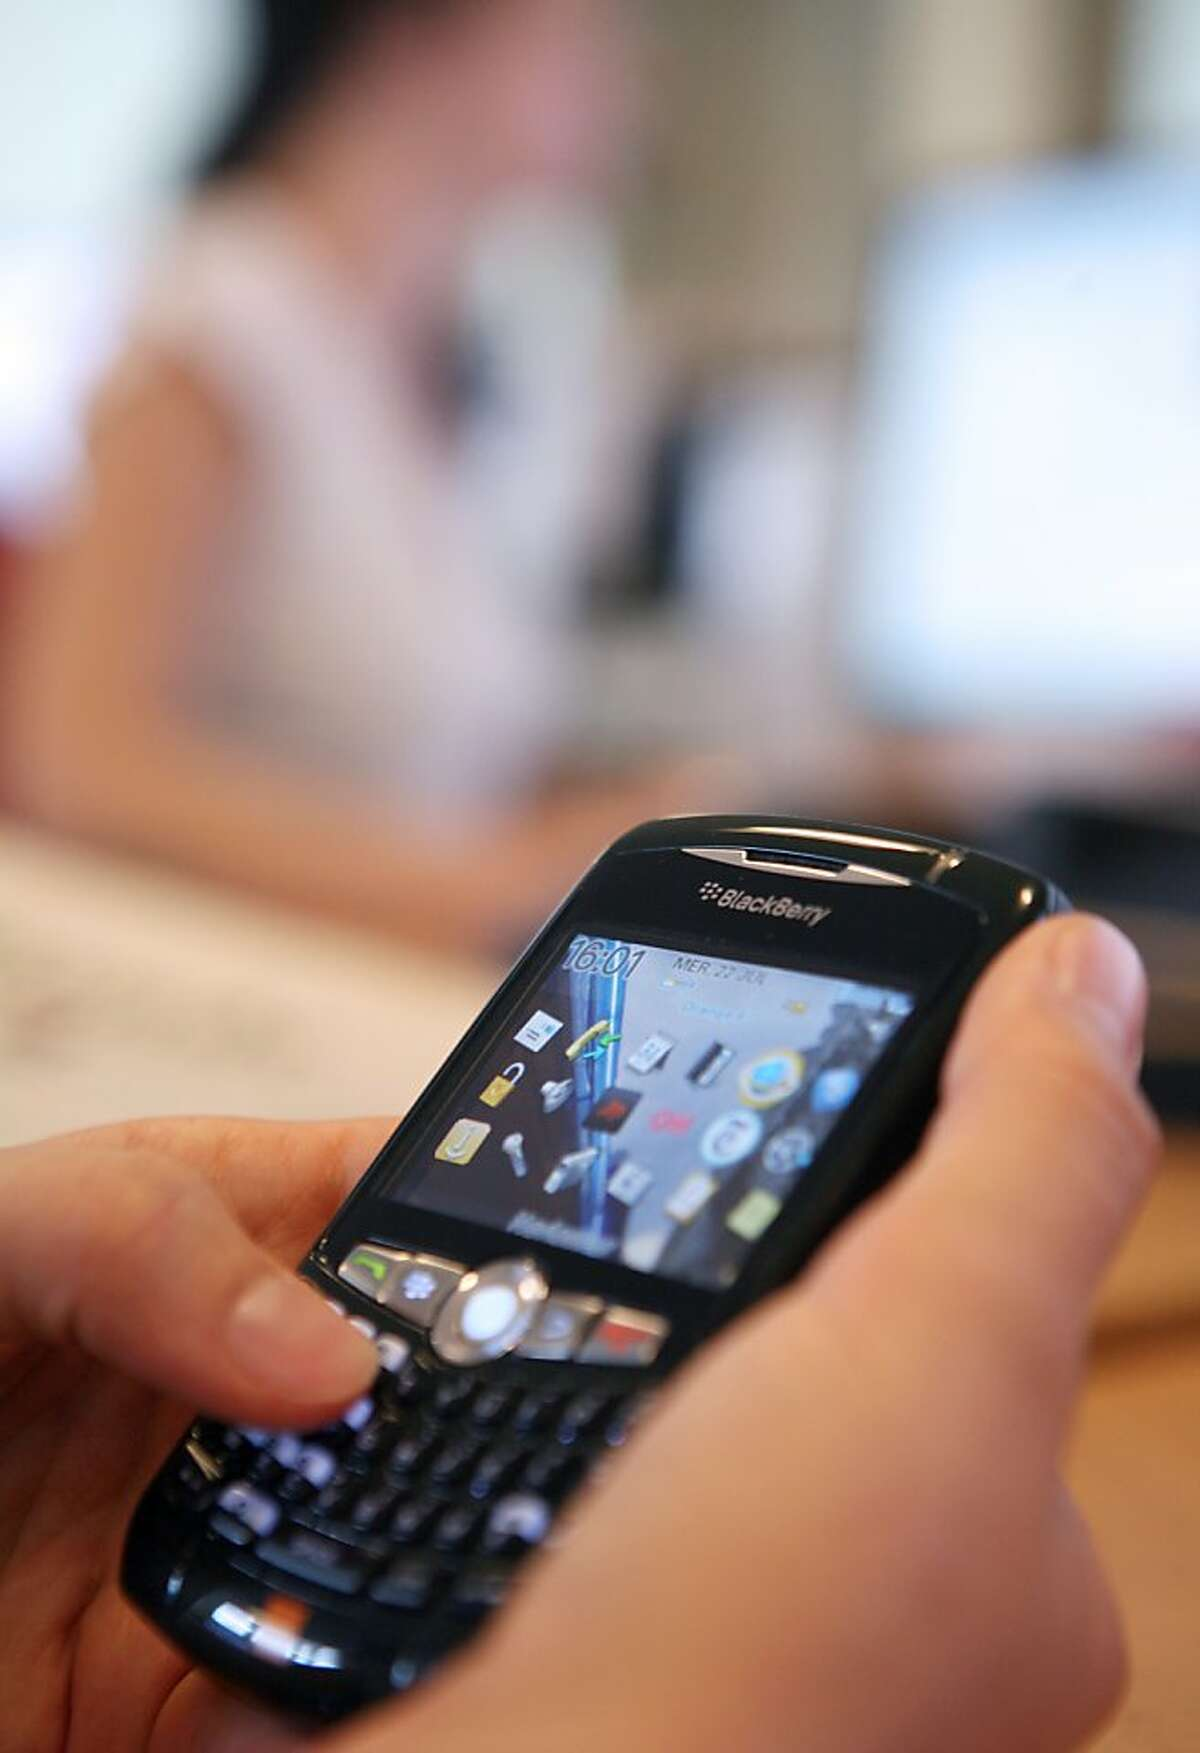 """A picture taken on July 22, 2009 in Paris shows a person using a BlackBerry phone. The use of cell phones and other wireless communication devices are """"possibly carcinogenic to humans"""", the World Health Organisation's (WHO) cancer research agency said on May 31, 2011."""